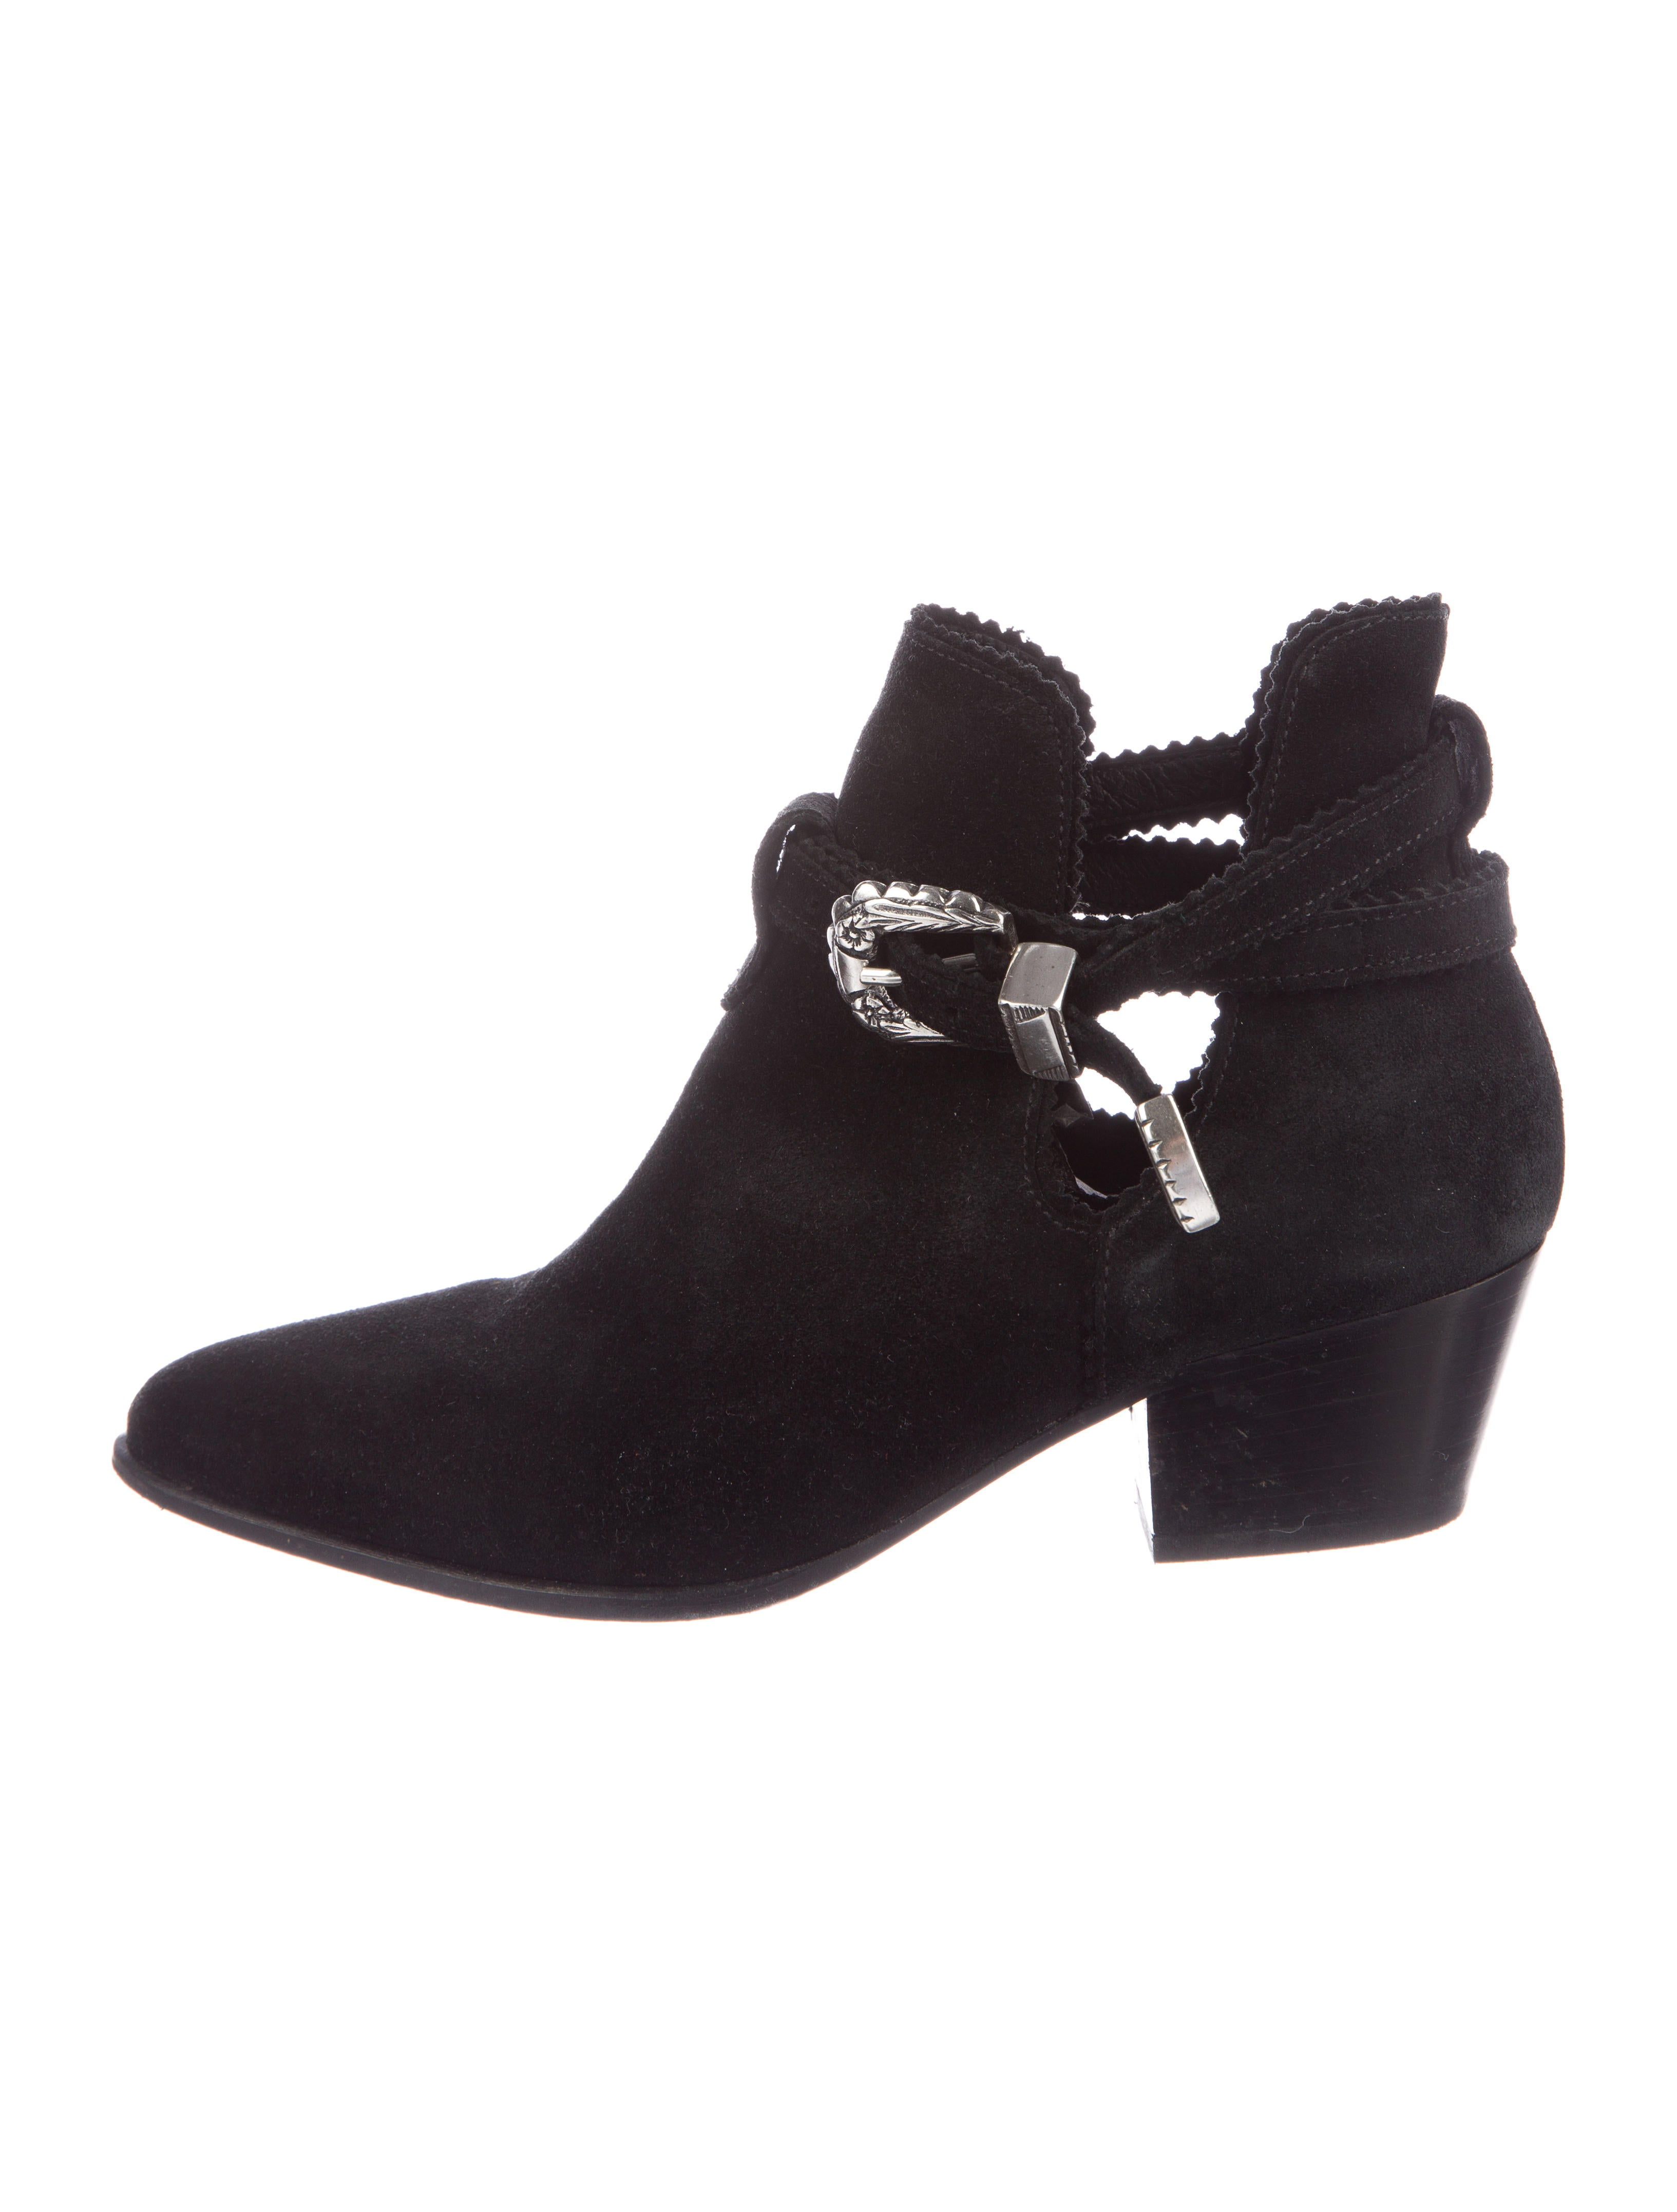 Sandro Suede Pointed-Toe Booties buy cheap new arrival latest collections buy cheap shop for cheap sale countdown package utexPncGOD